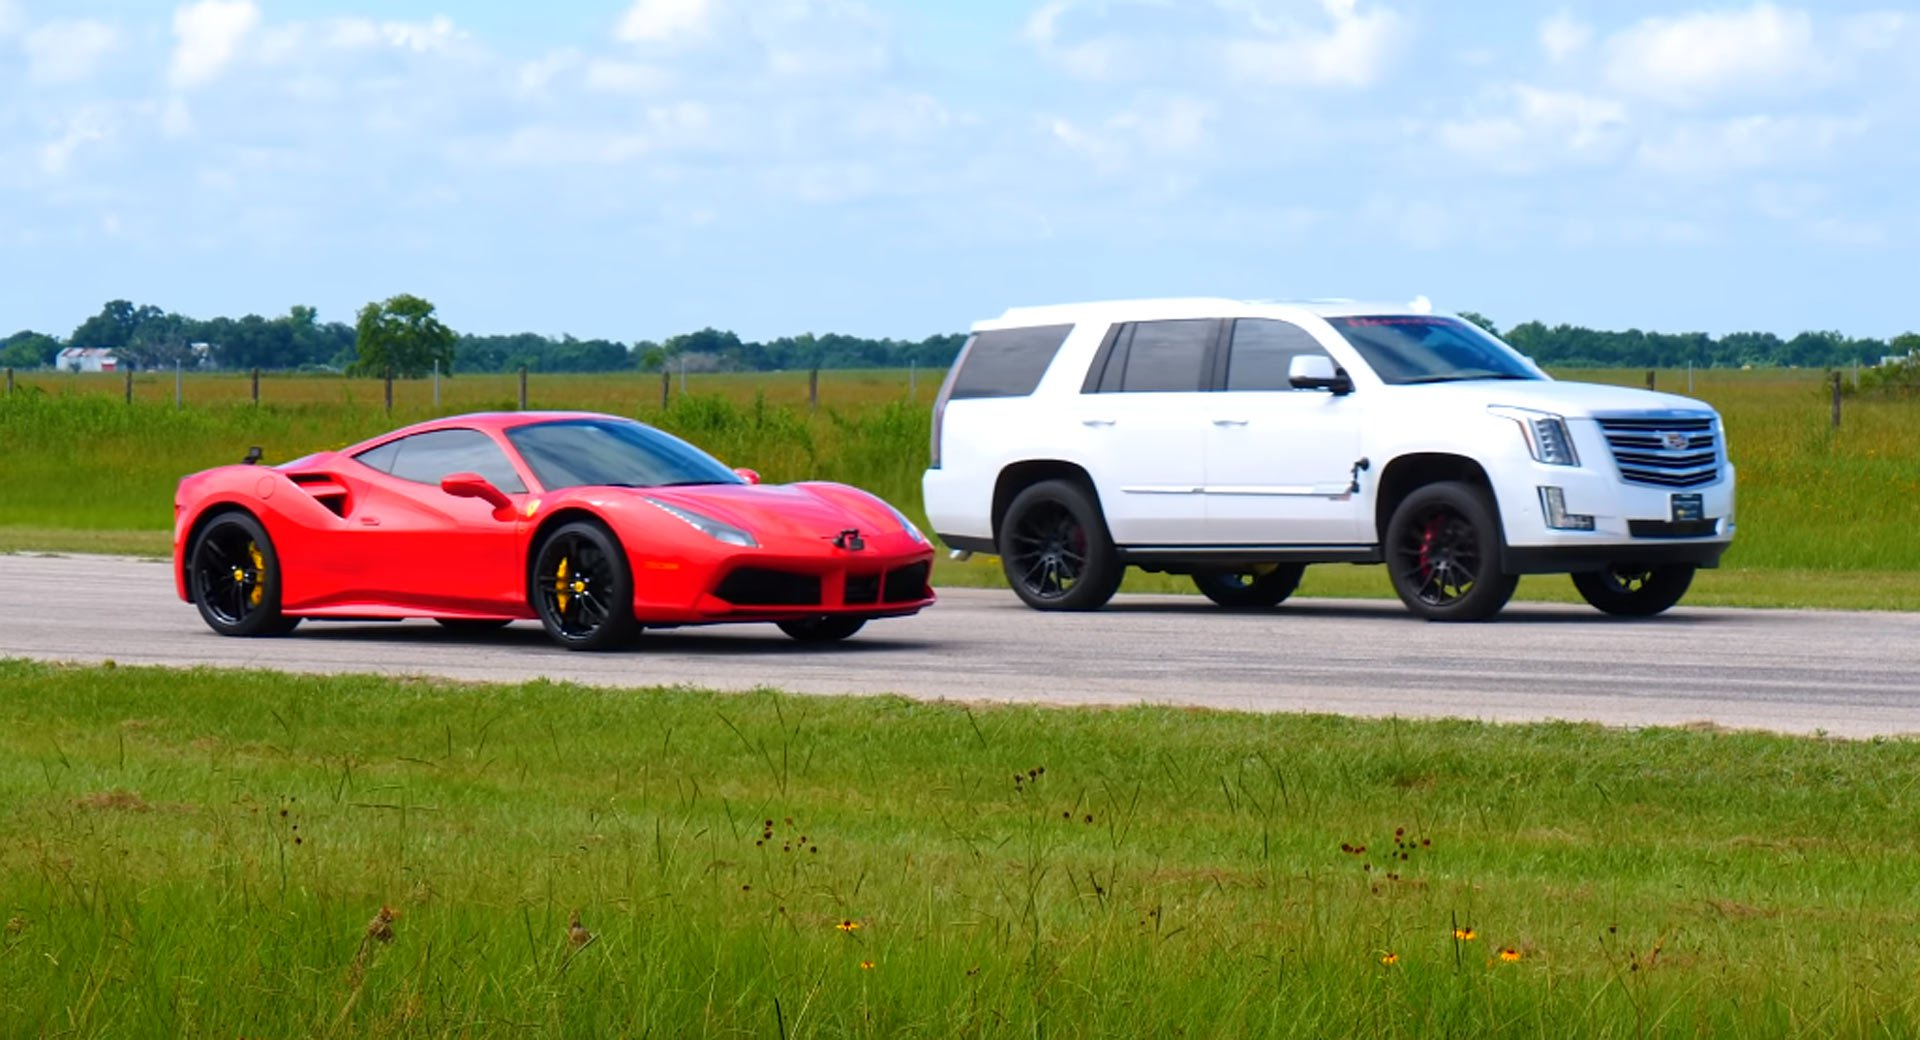 To show what the modified SUV was truly capable of, Hennessey Performance arranged for two drag races between it and a Ferrari 488